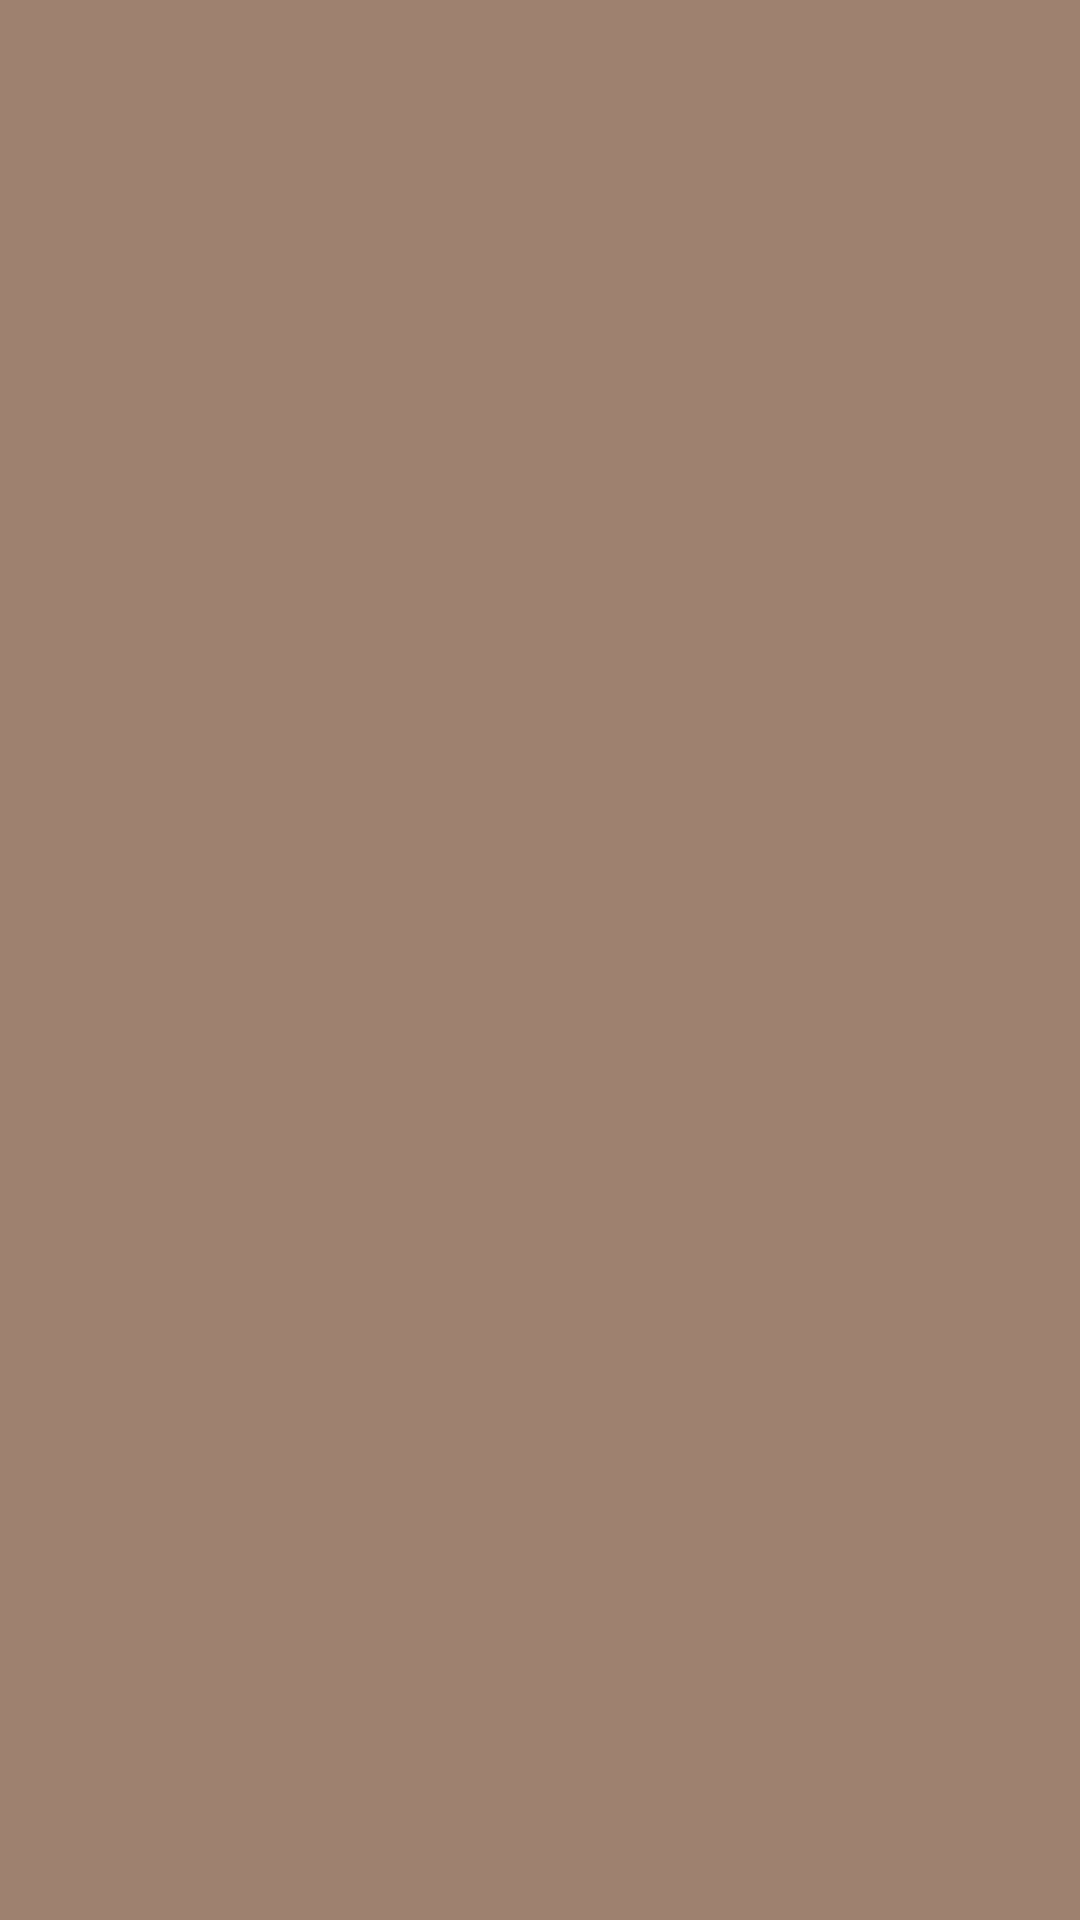 1080x1920 Beaver Solid Color Background